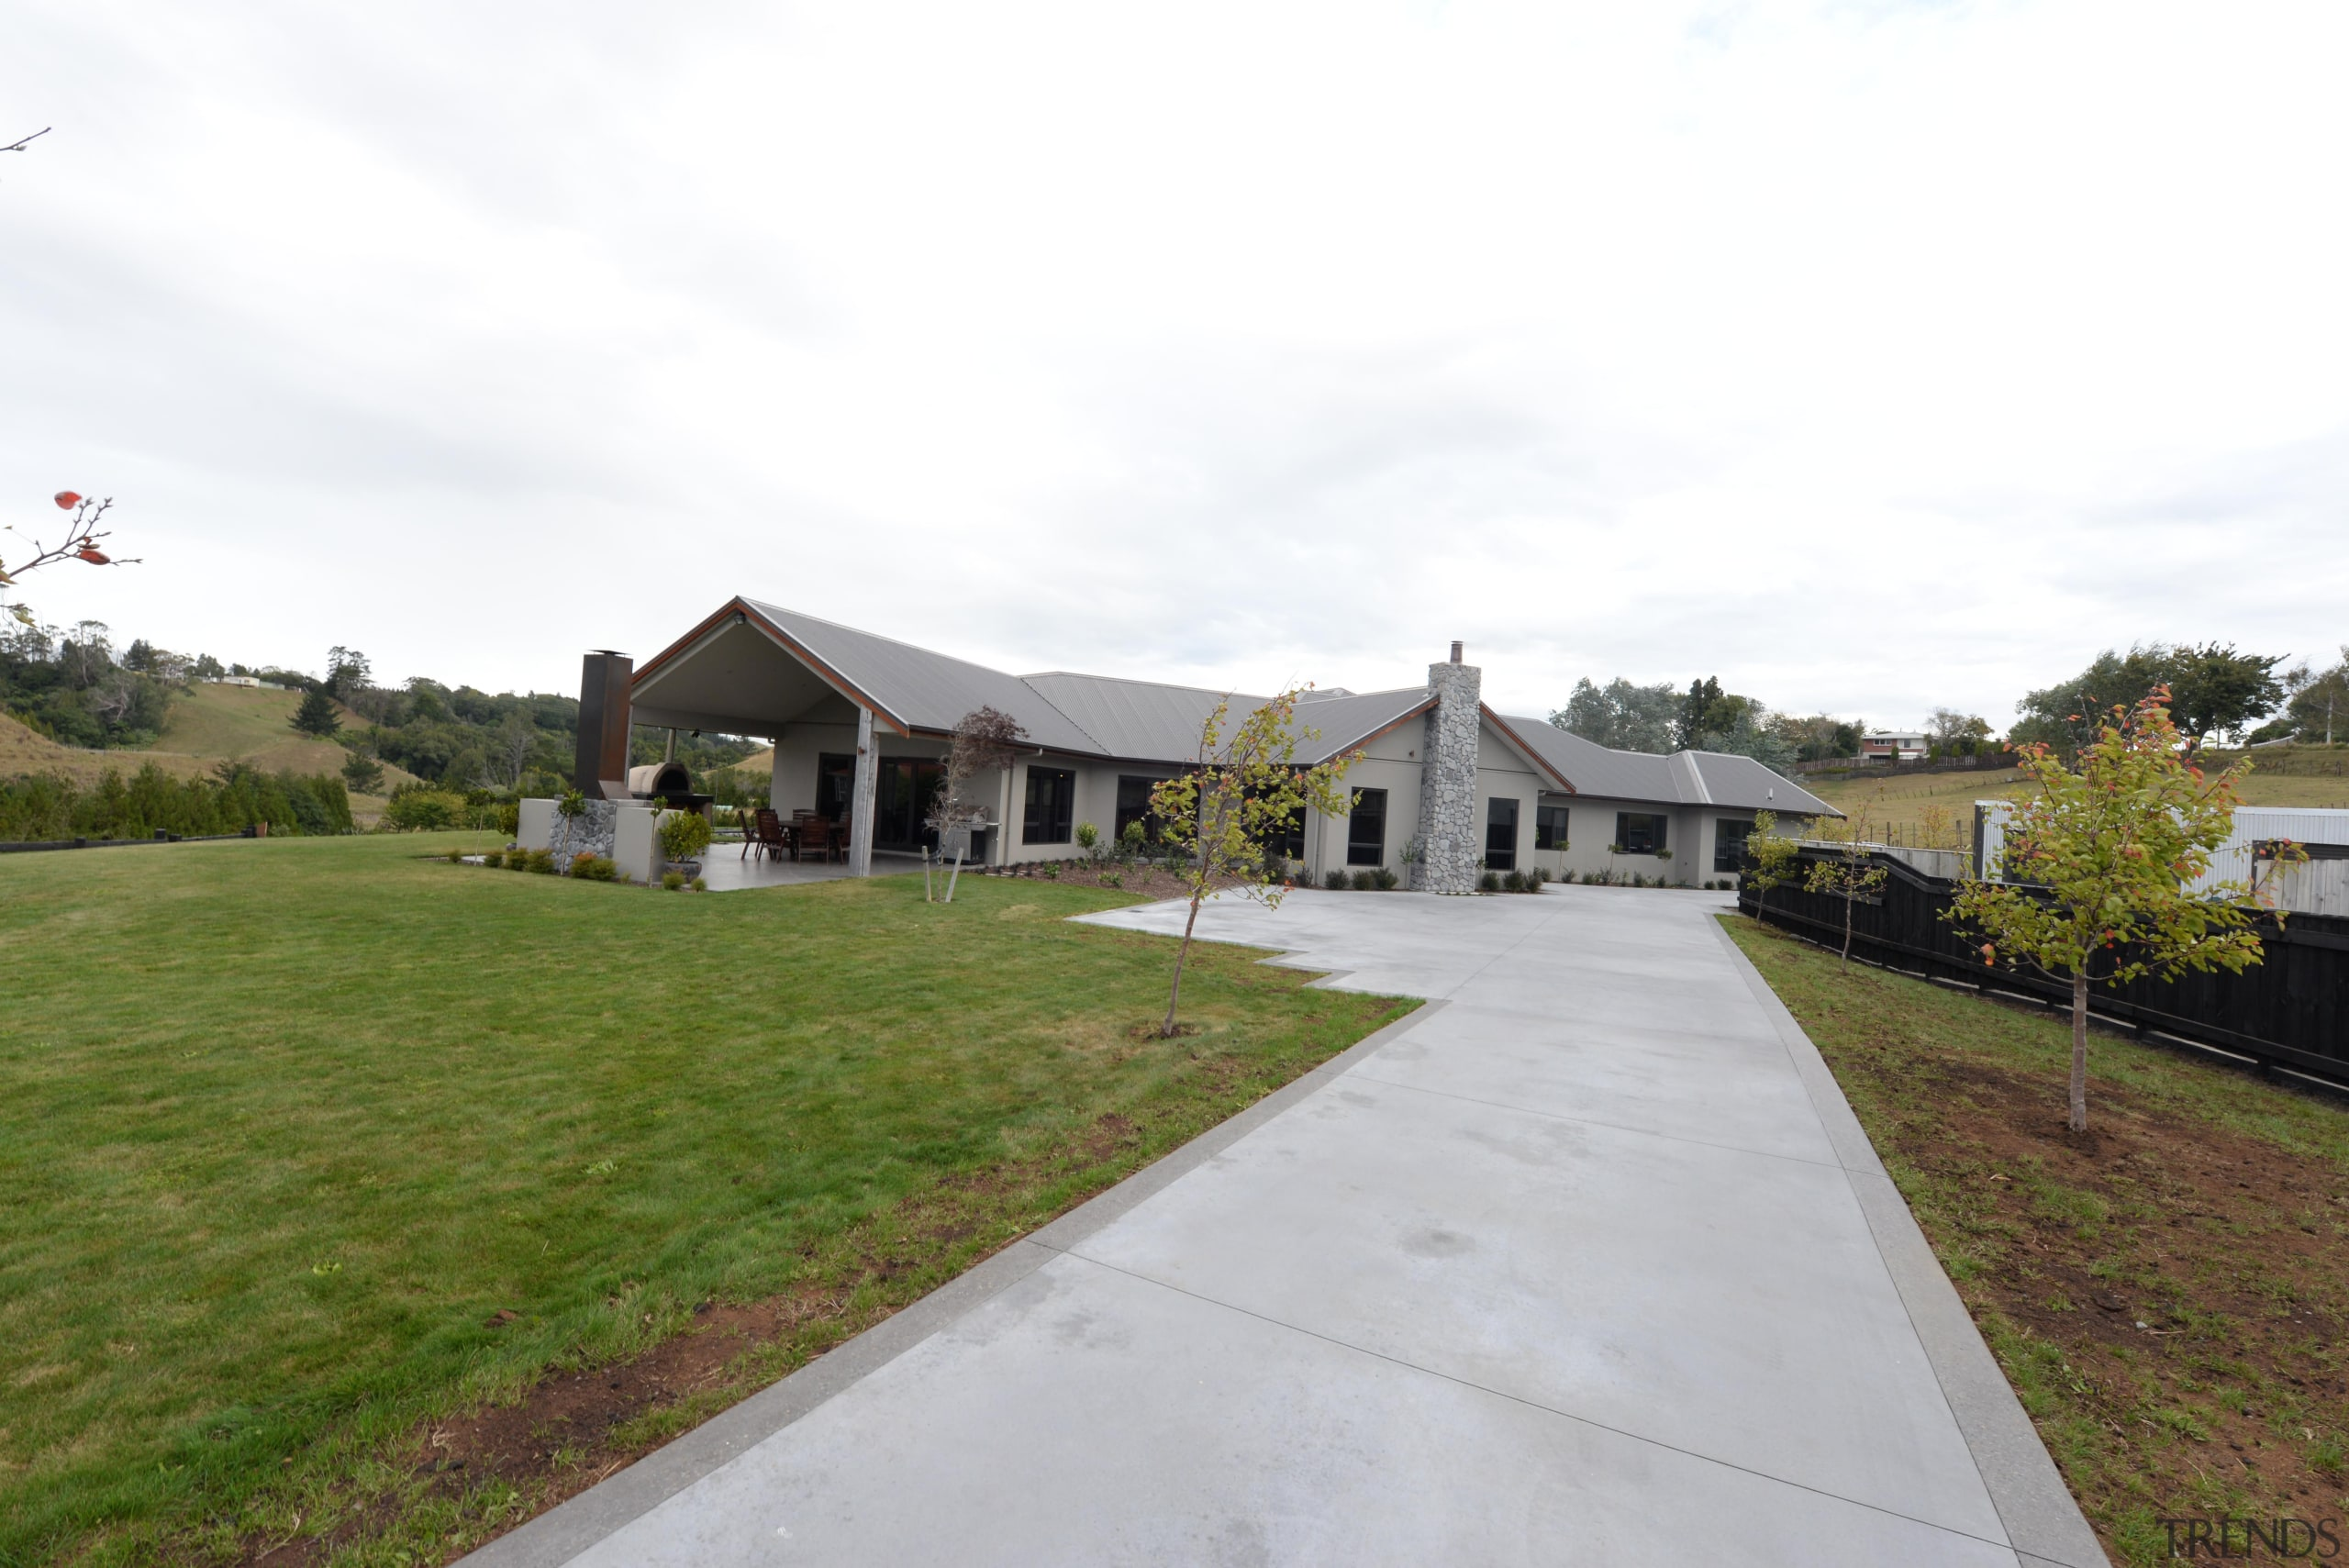 Built in Taranaki by Fowler HomesFor more information, asphalt, cottage, estate, farmhouse, grass, home, house, land lot, landscape, property, real estate, residential area, roof, suburb, white, brown